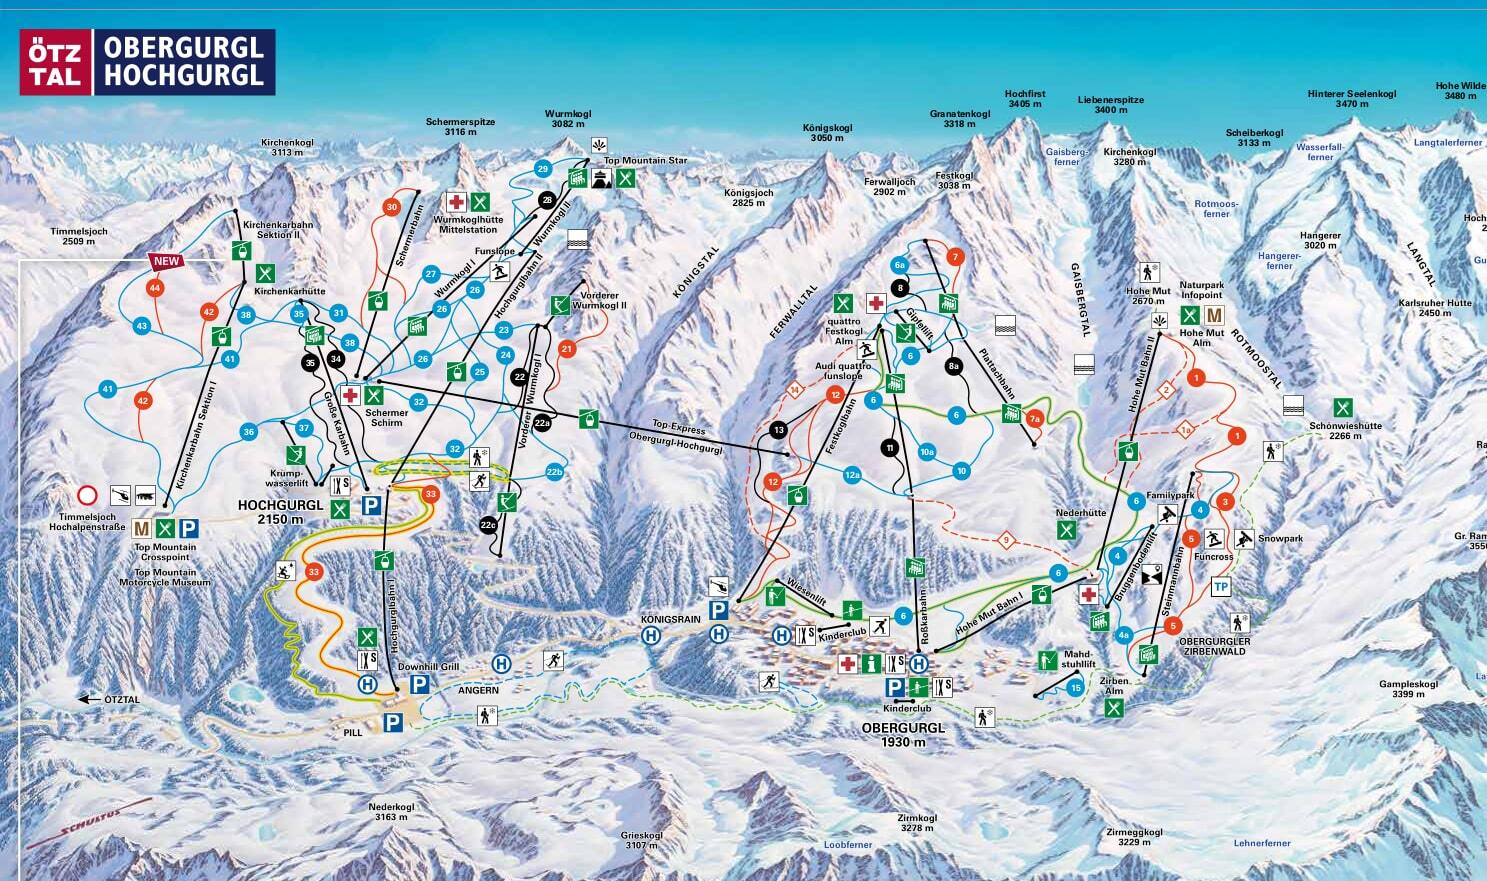 Obergurgl Piste / Trail Map